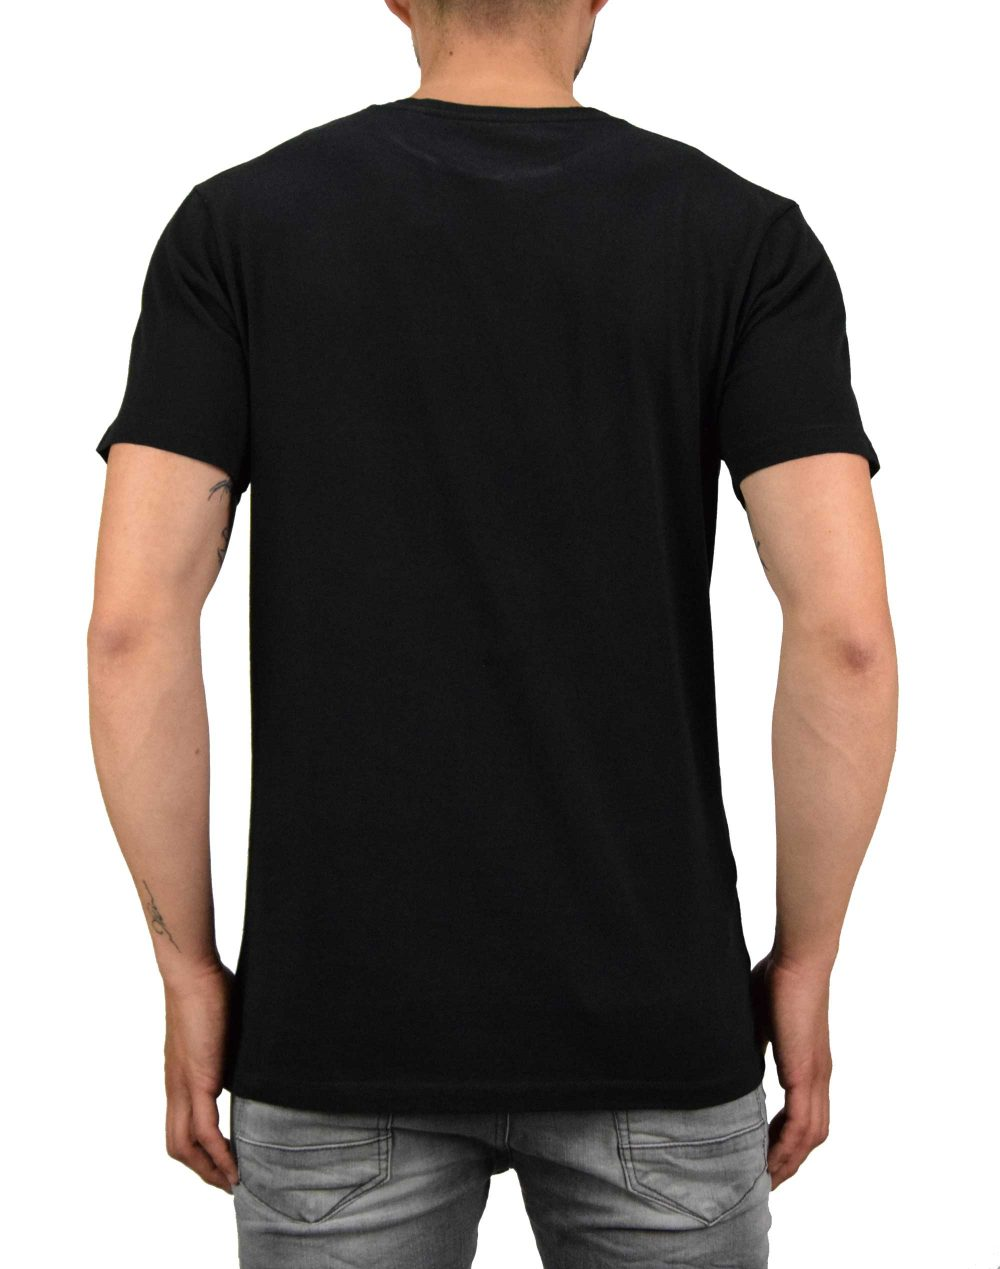 Jack & Jones Proud Tee (12173798) Black